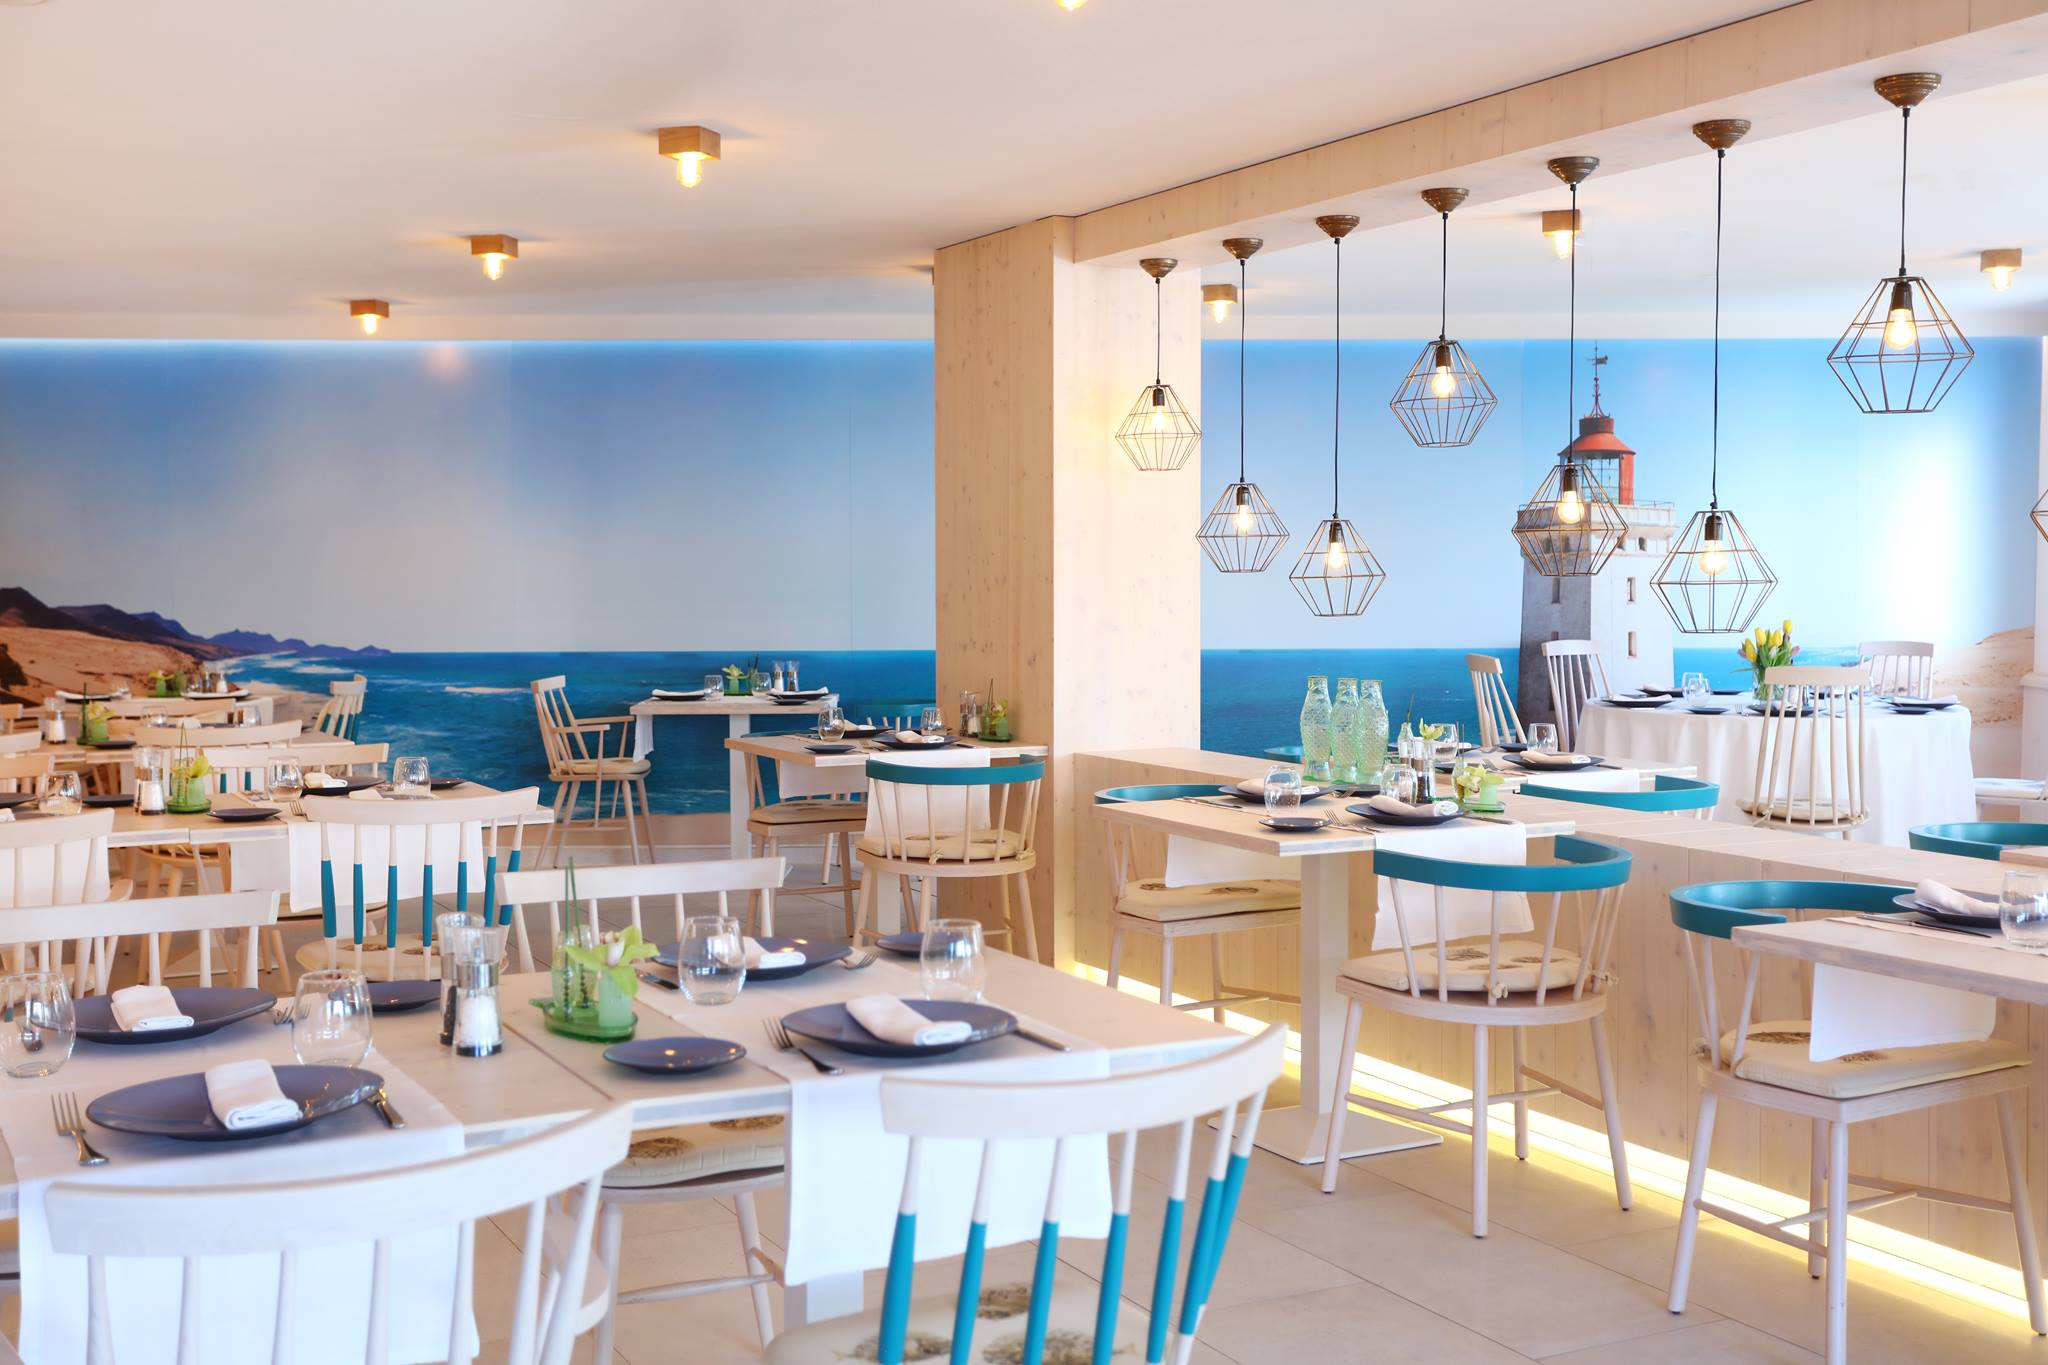 Marea Restaurant - Palma Beach Area